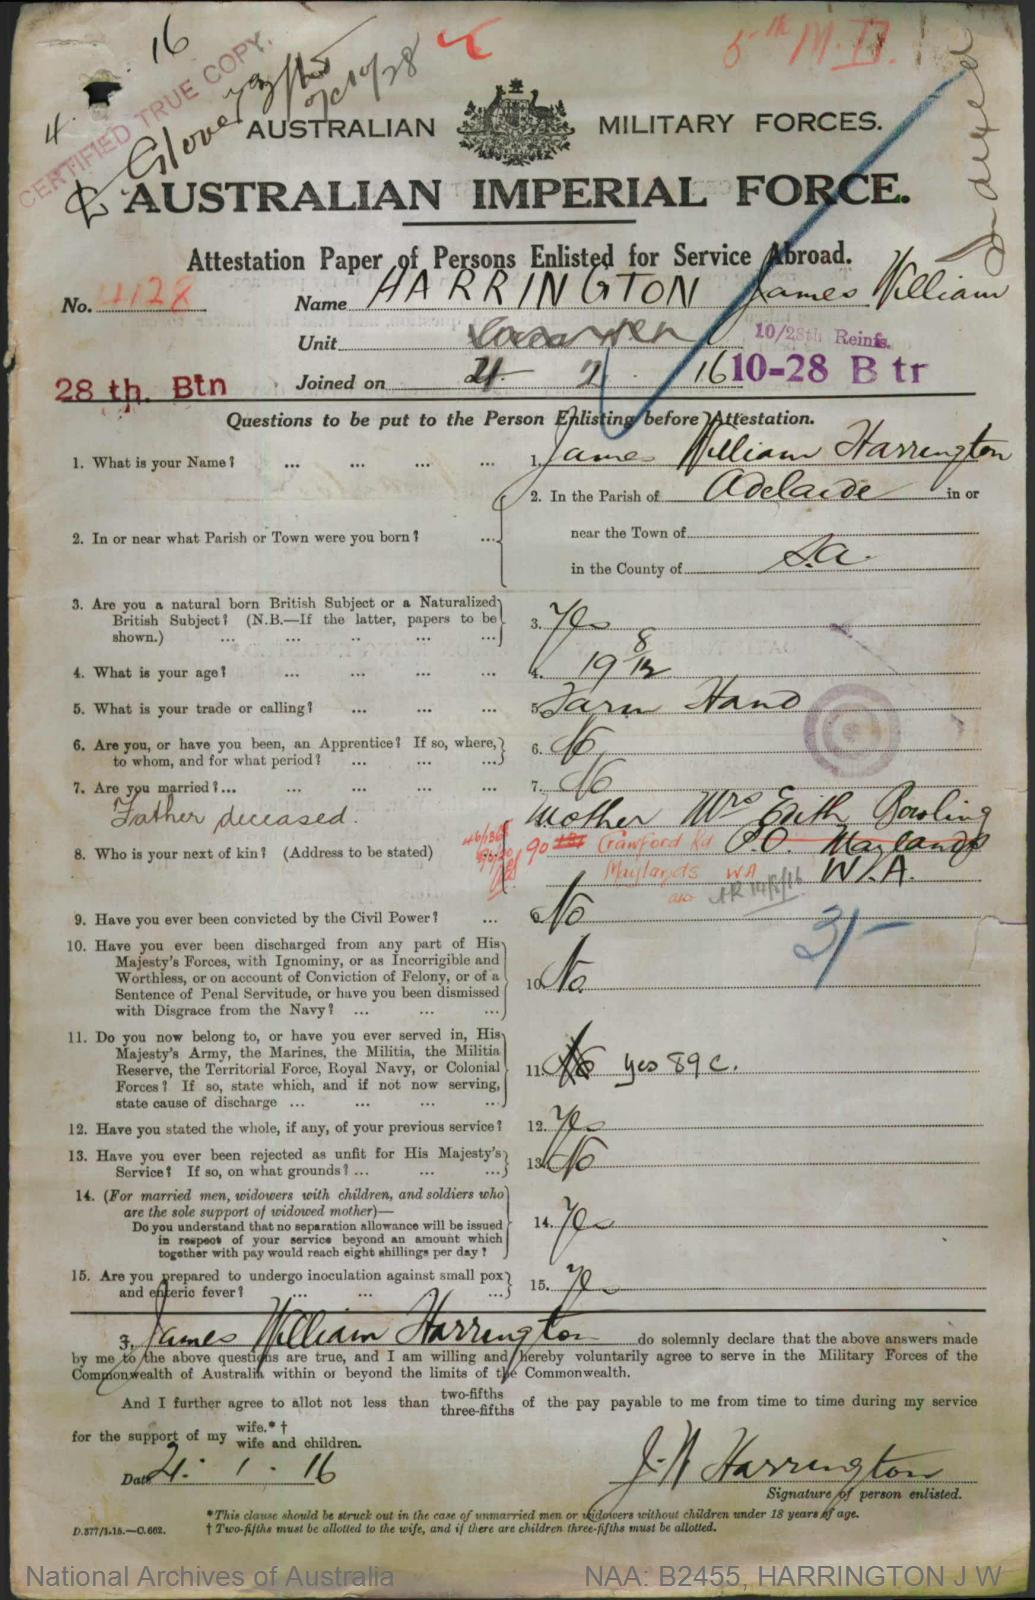 HARRINGTON James William : Service Number - 4128 : Place of Birth - Adelaide SA : Place of Enlistment - Perth WA : Next of Kin - (Mother) BOWLING Edith